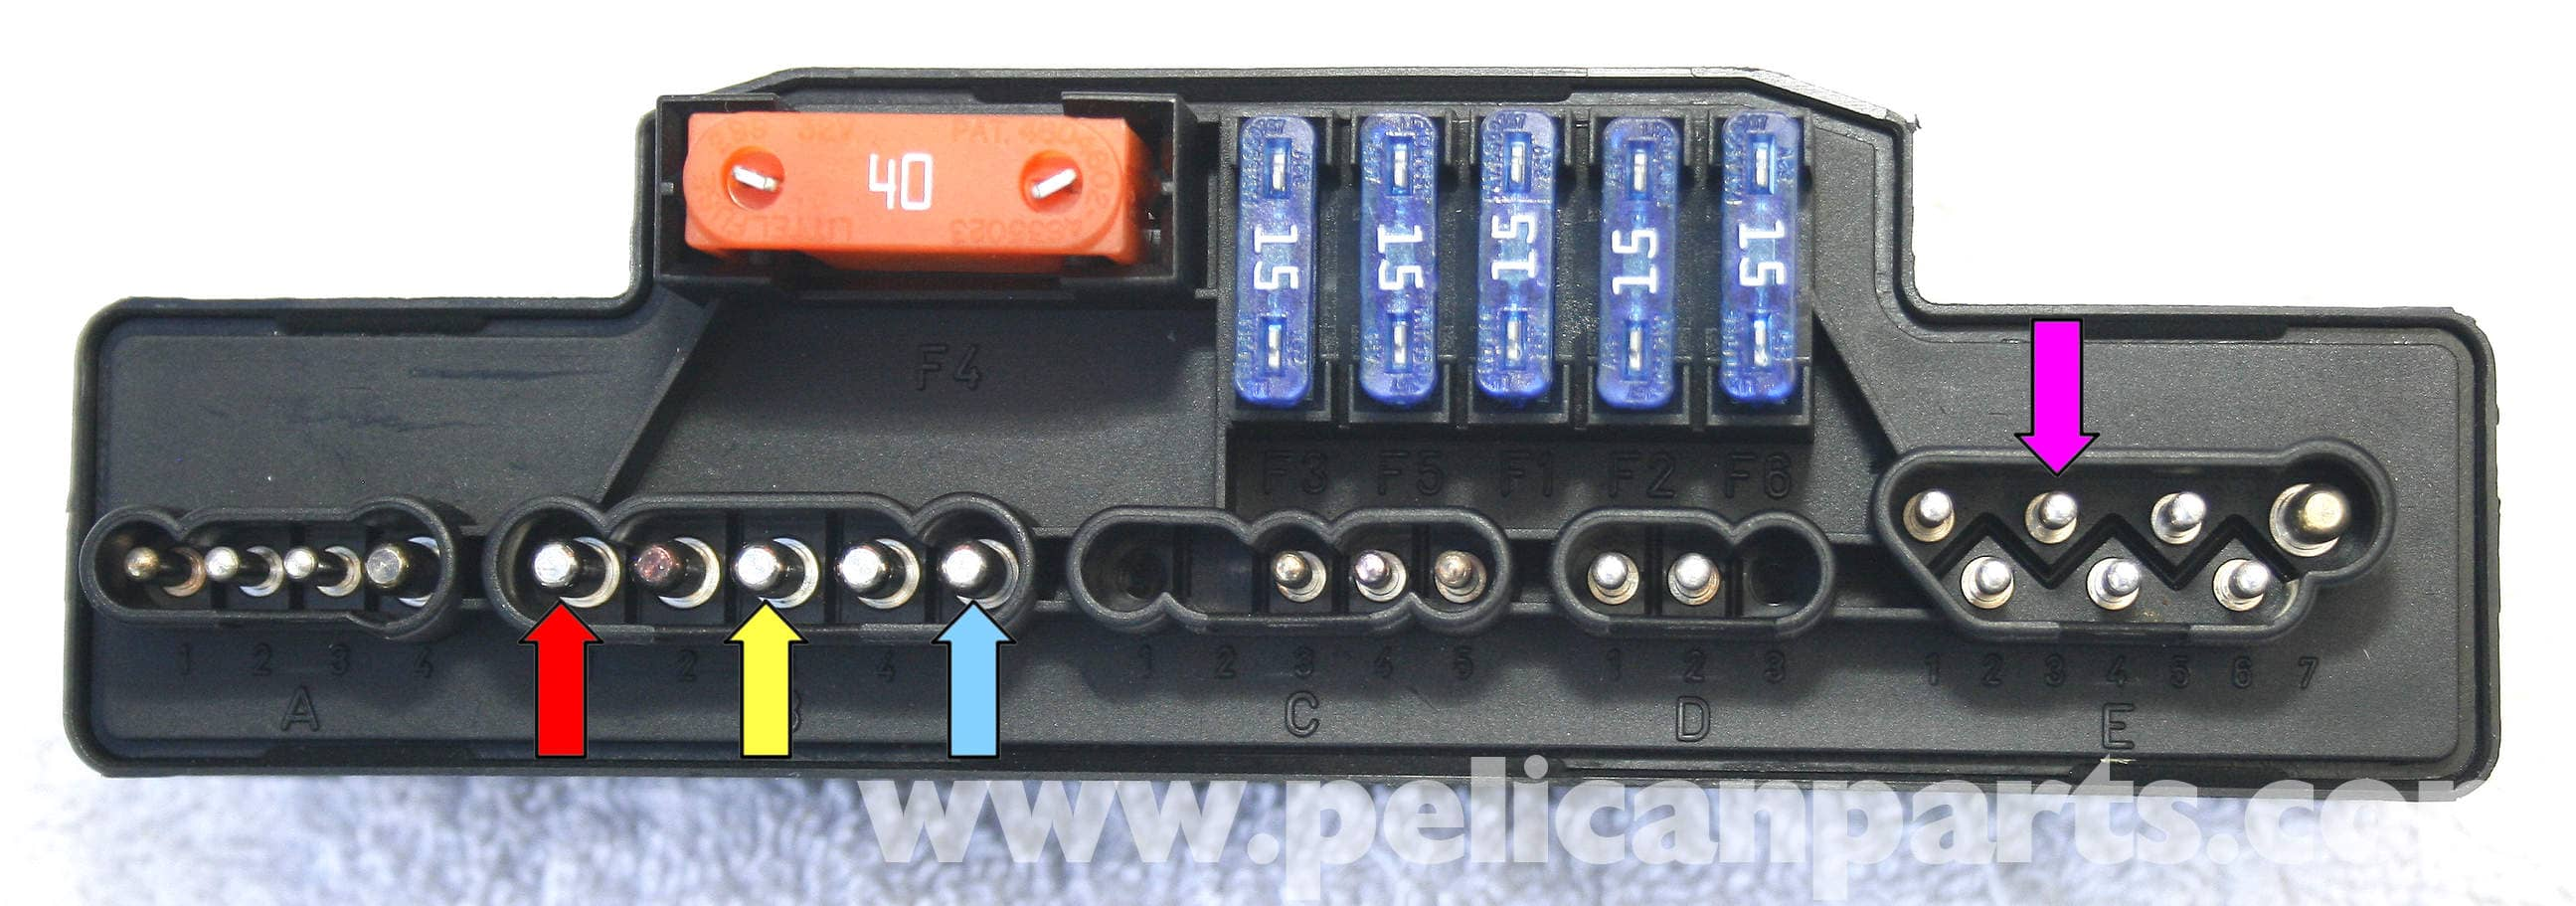 K40 relay e320 wiring diagram basic guide wiring diagram mercedes benz slk 230 k40 overload protection relay repair 1998 rh pelicanparts com 4 pin relay wiring diagram fuel pump relay wiring diagram cheapraybanclubmaster